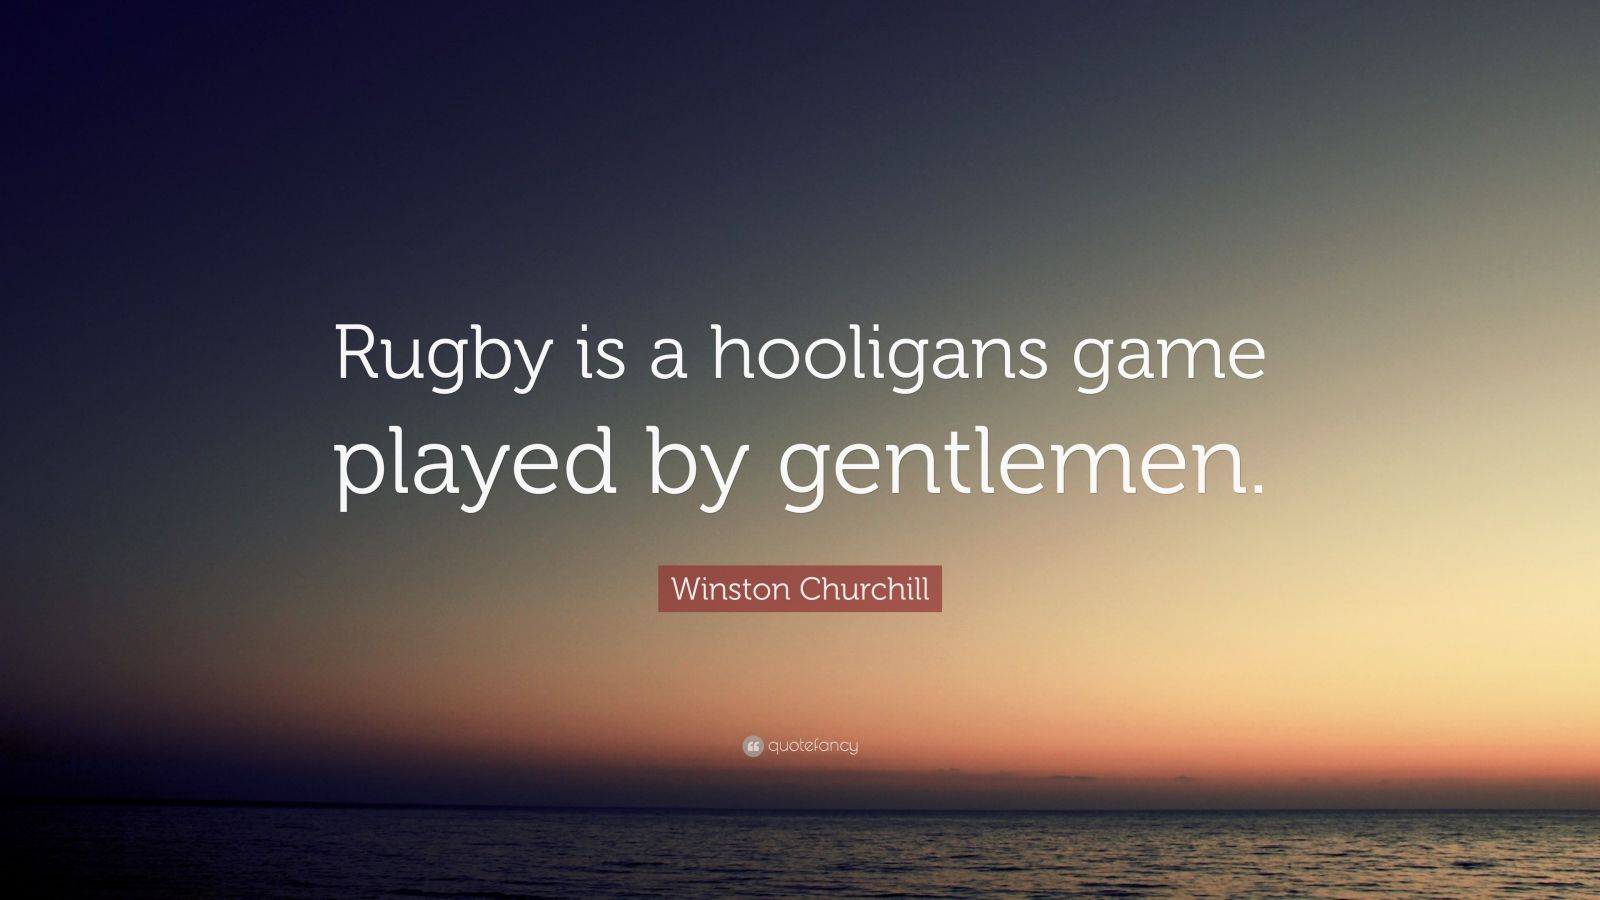 A Hooligan's Game Played By Gentlemen: Rugby in America ...